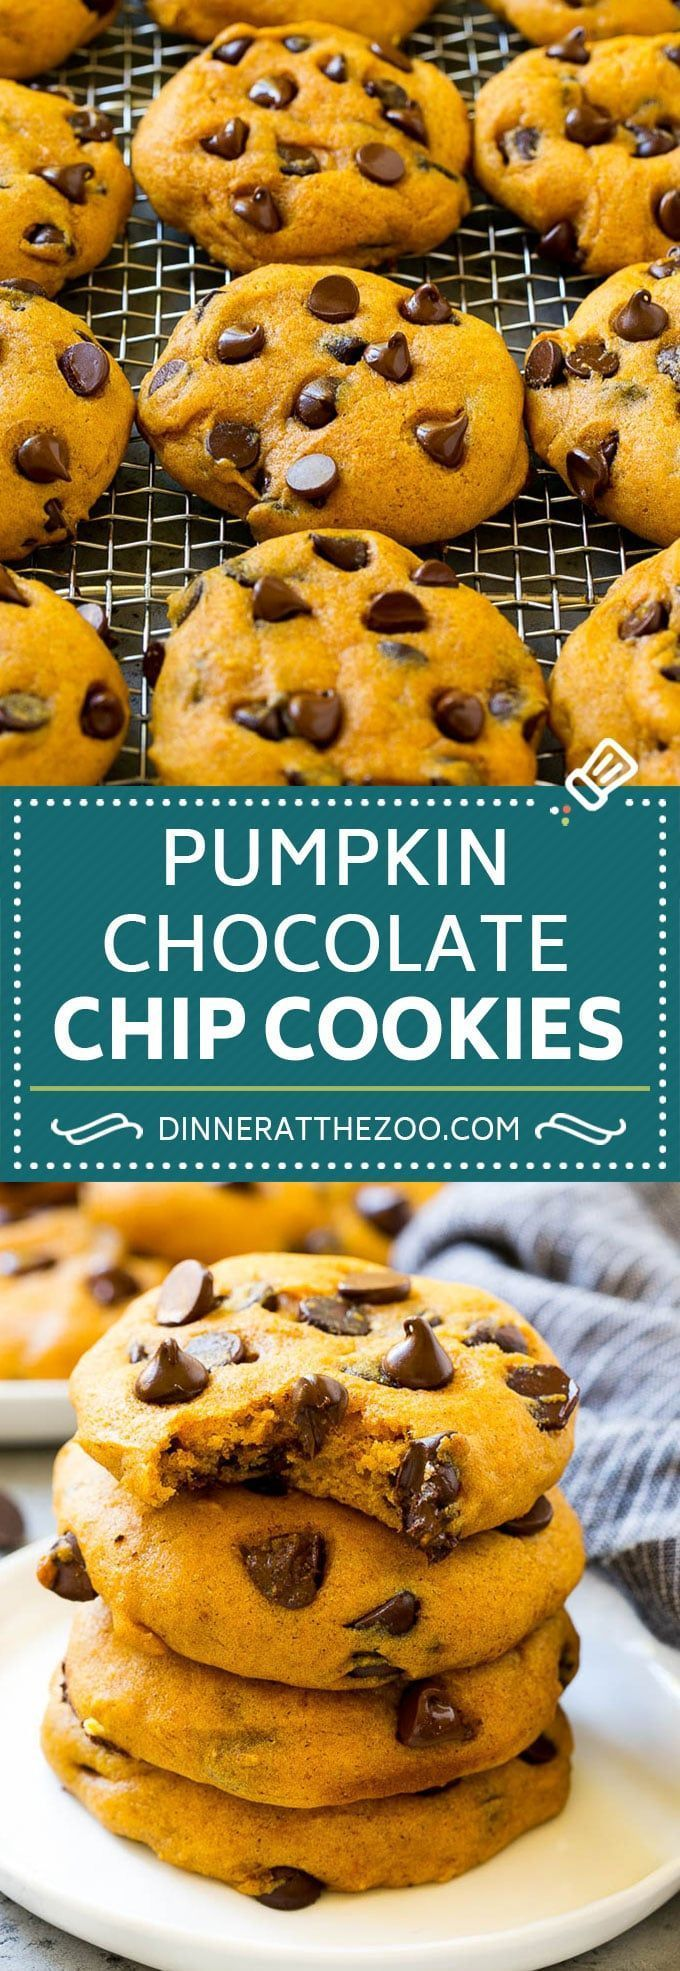 Pumpkin Chocolate Chip Cookies Recipe | Pumpkin Cookies | Pumpkin Chocolate Cookies #pumpkin #cookies #chocolate #baking #fall #dinneratthezoo #dessert #chocolatechipcookies